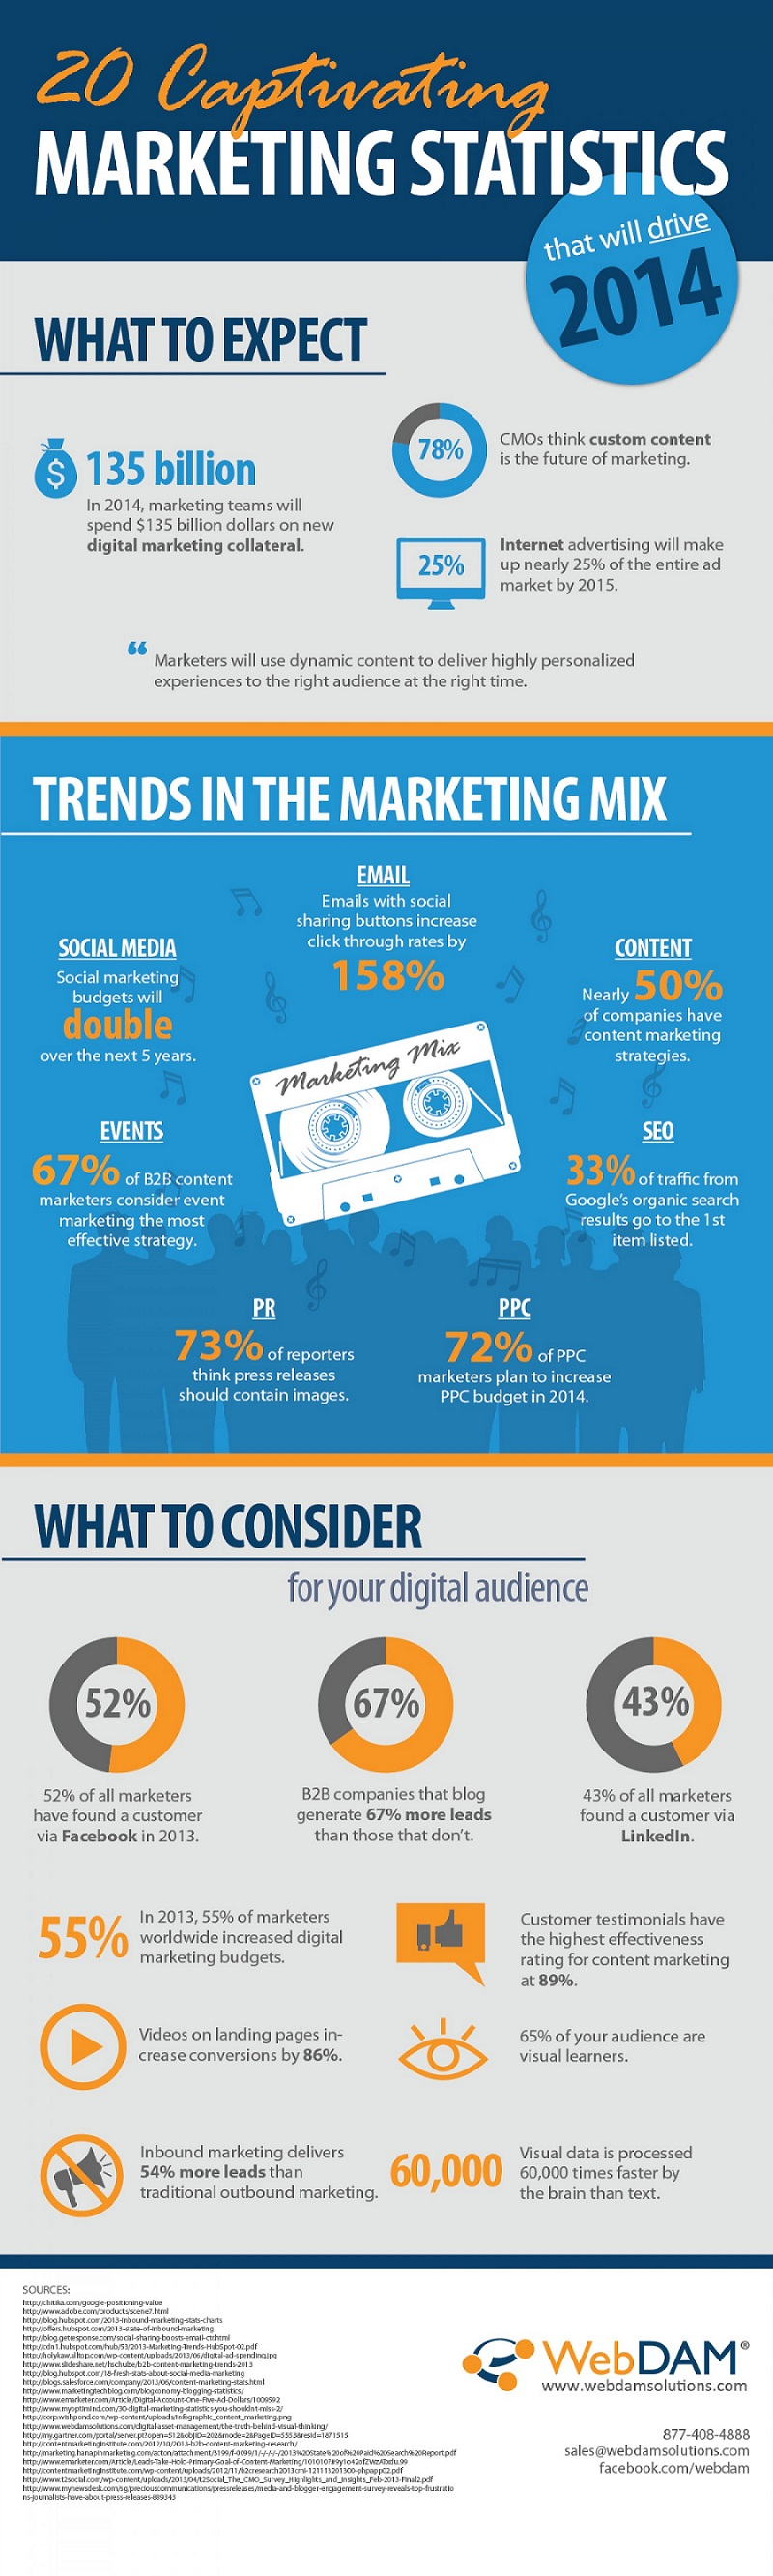 20-captivating-marketing-statistics-that-will-drive-2014-infographic